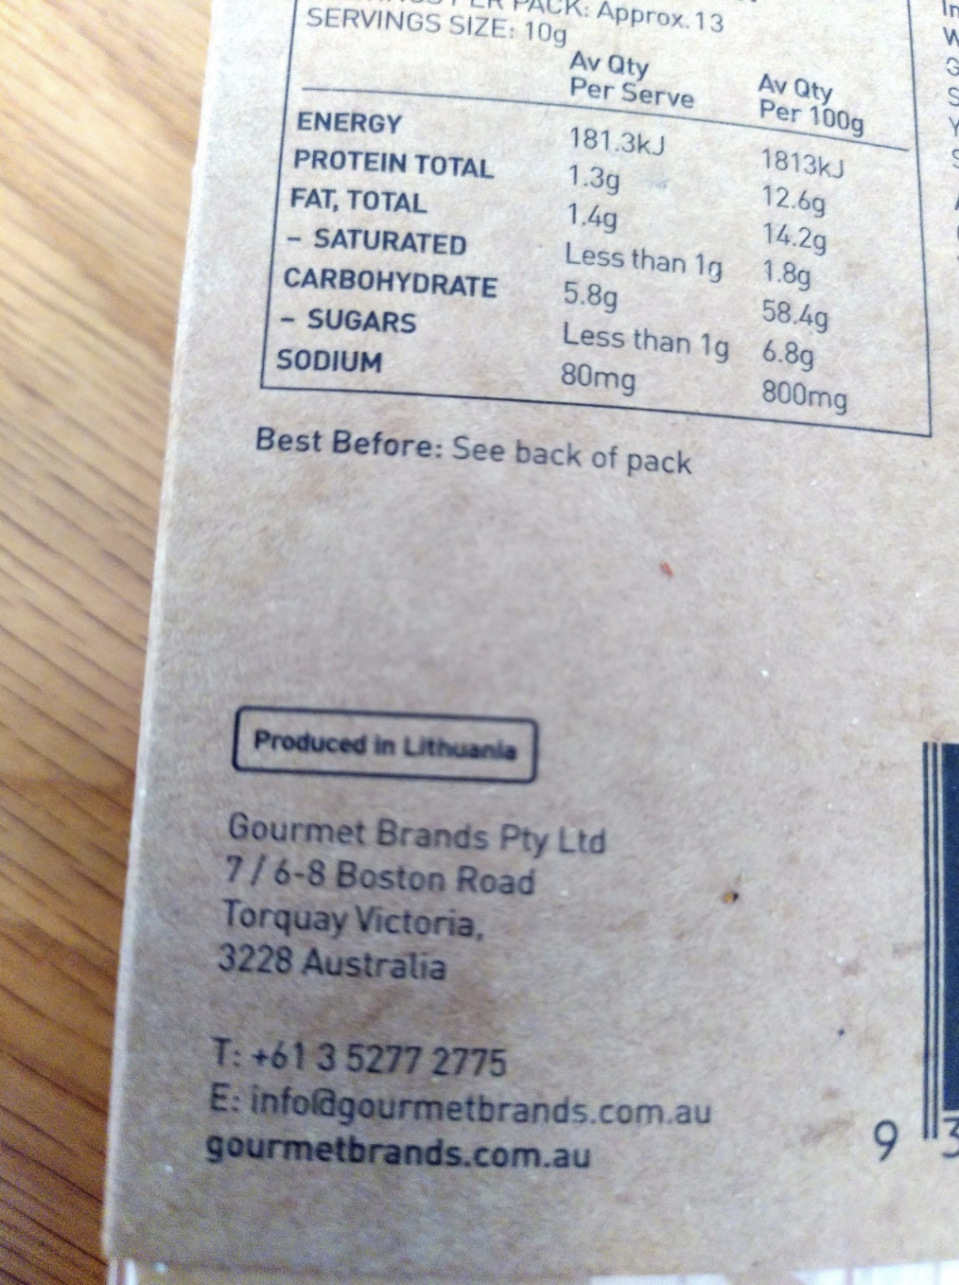 Back of crackers pack stating they're produced in Lithuania.